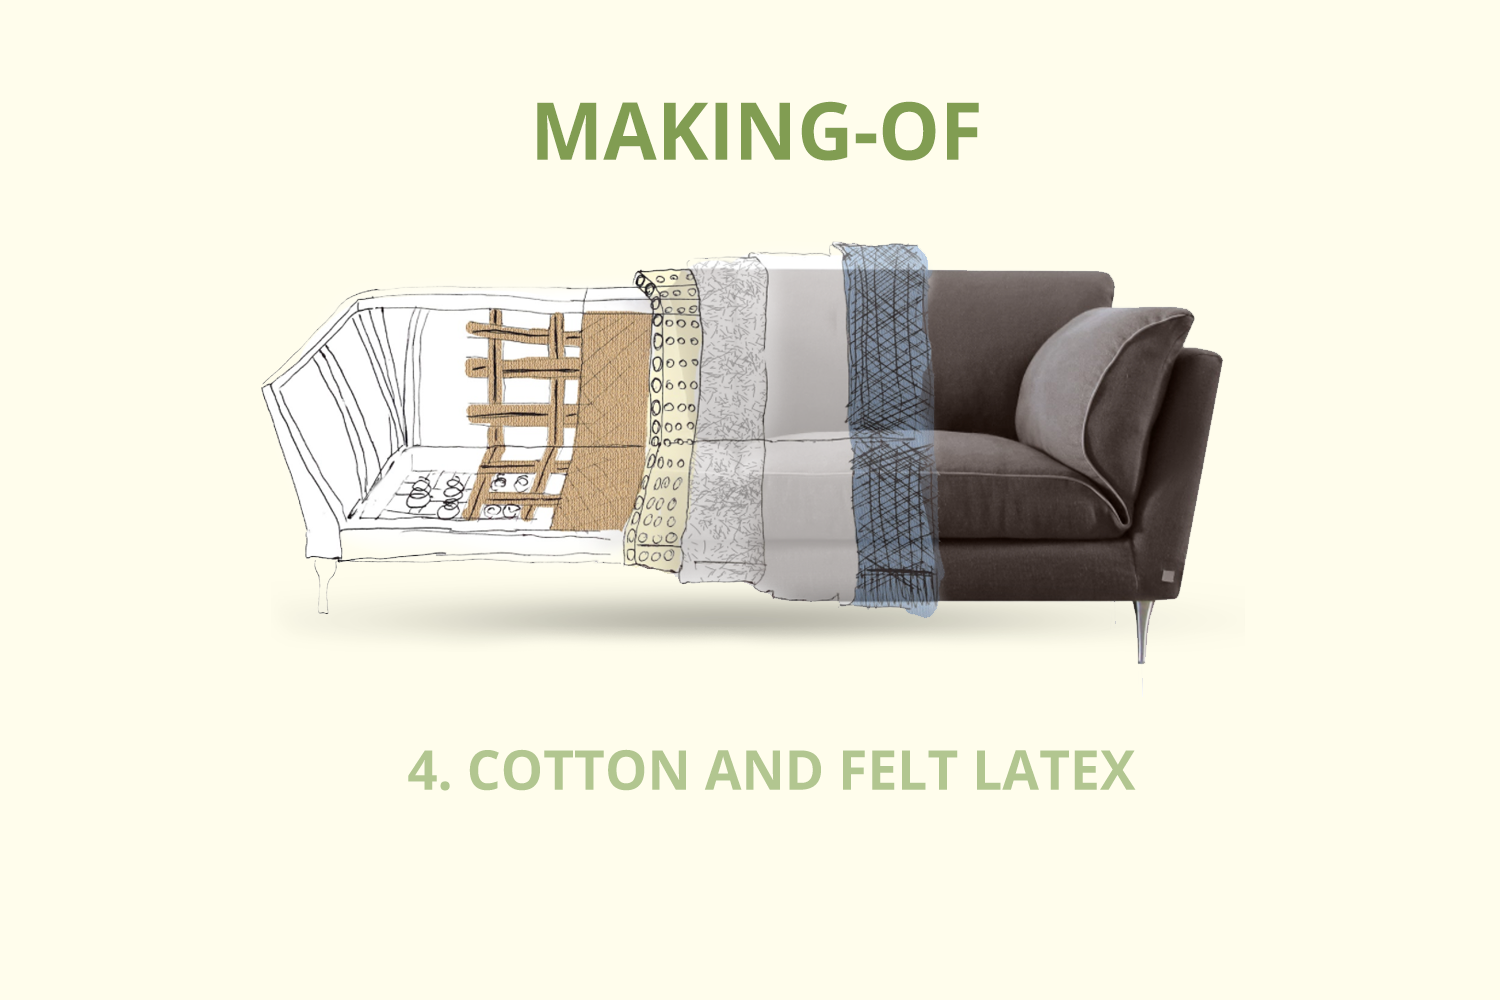 Buying a sustainable sofa - D3CO shows how it works